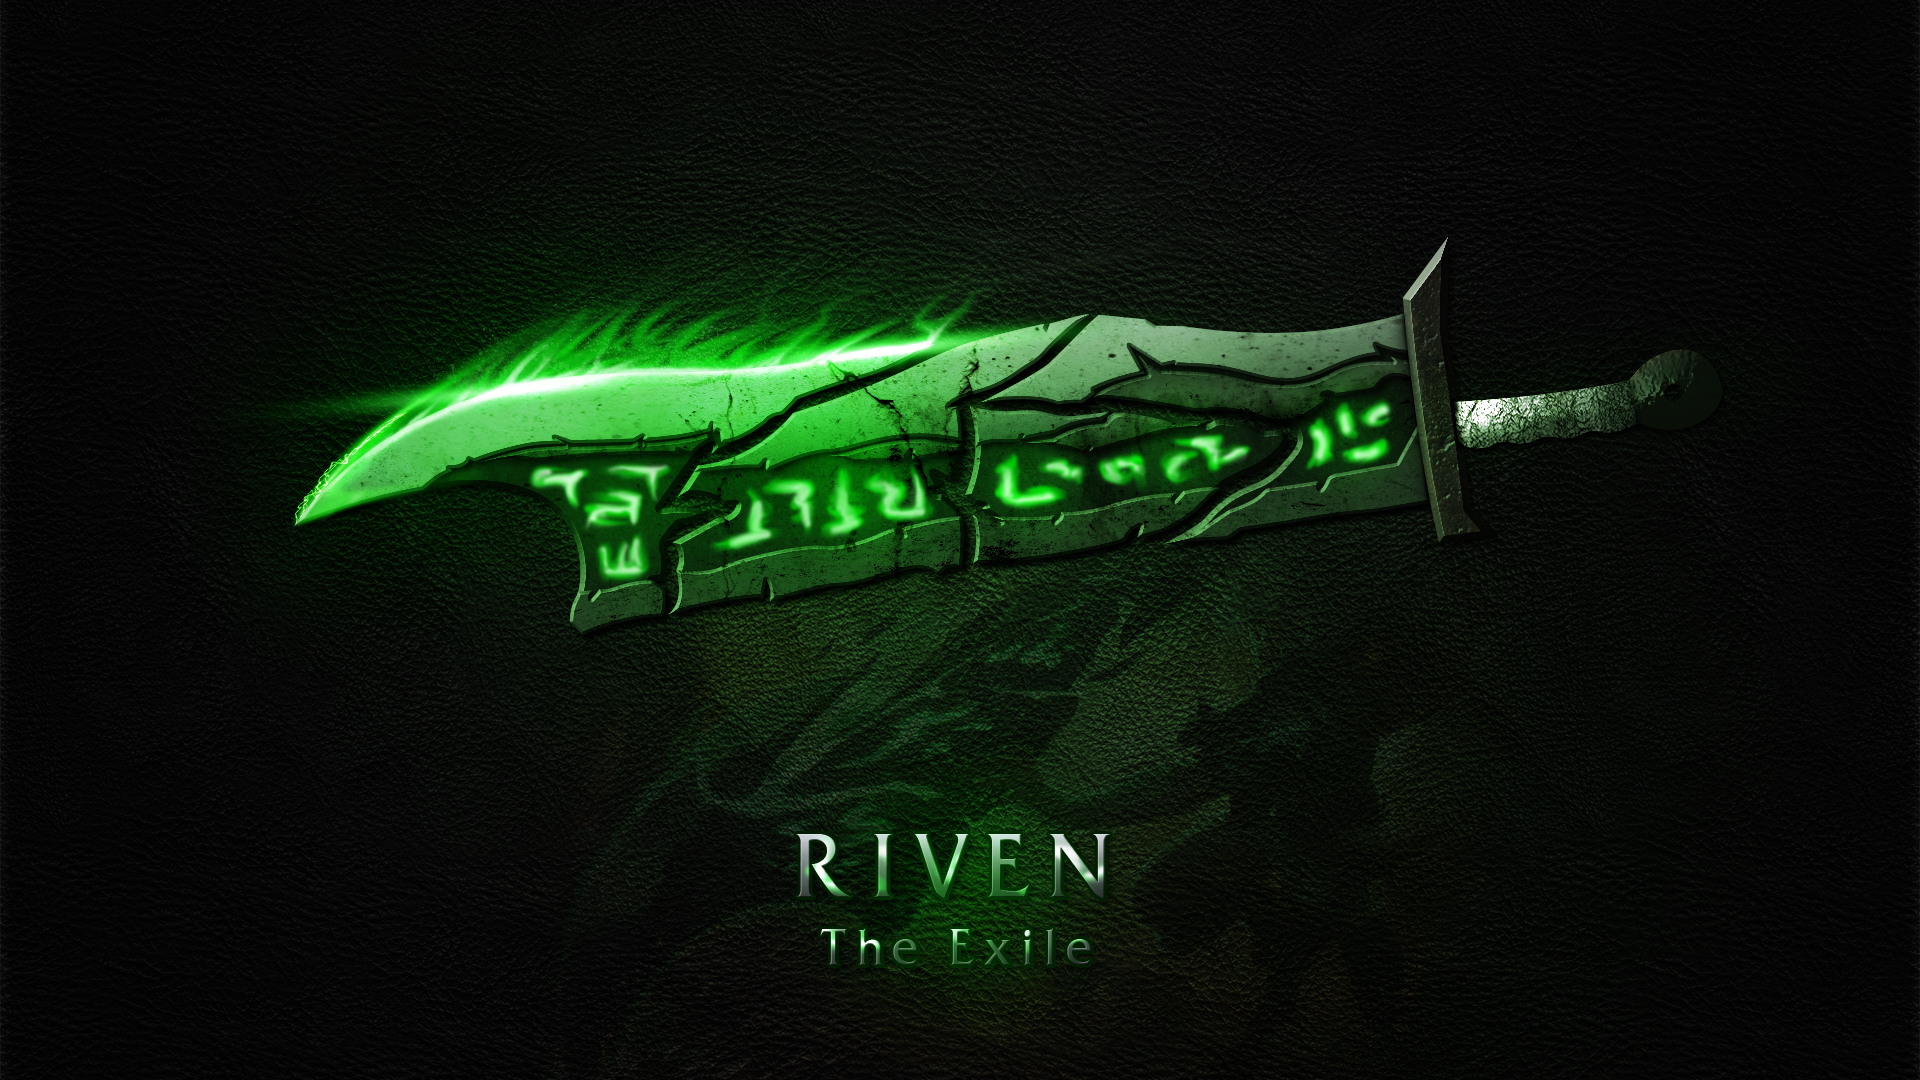 Riven Blade wallpaper